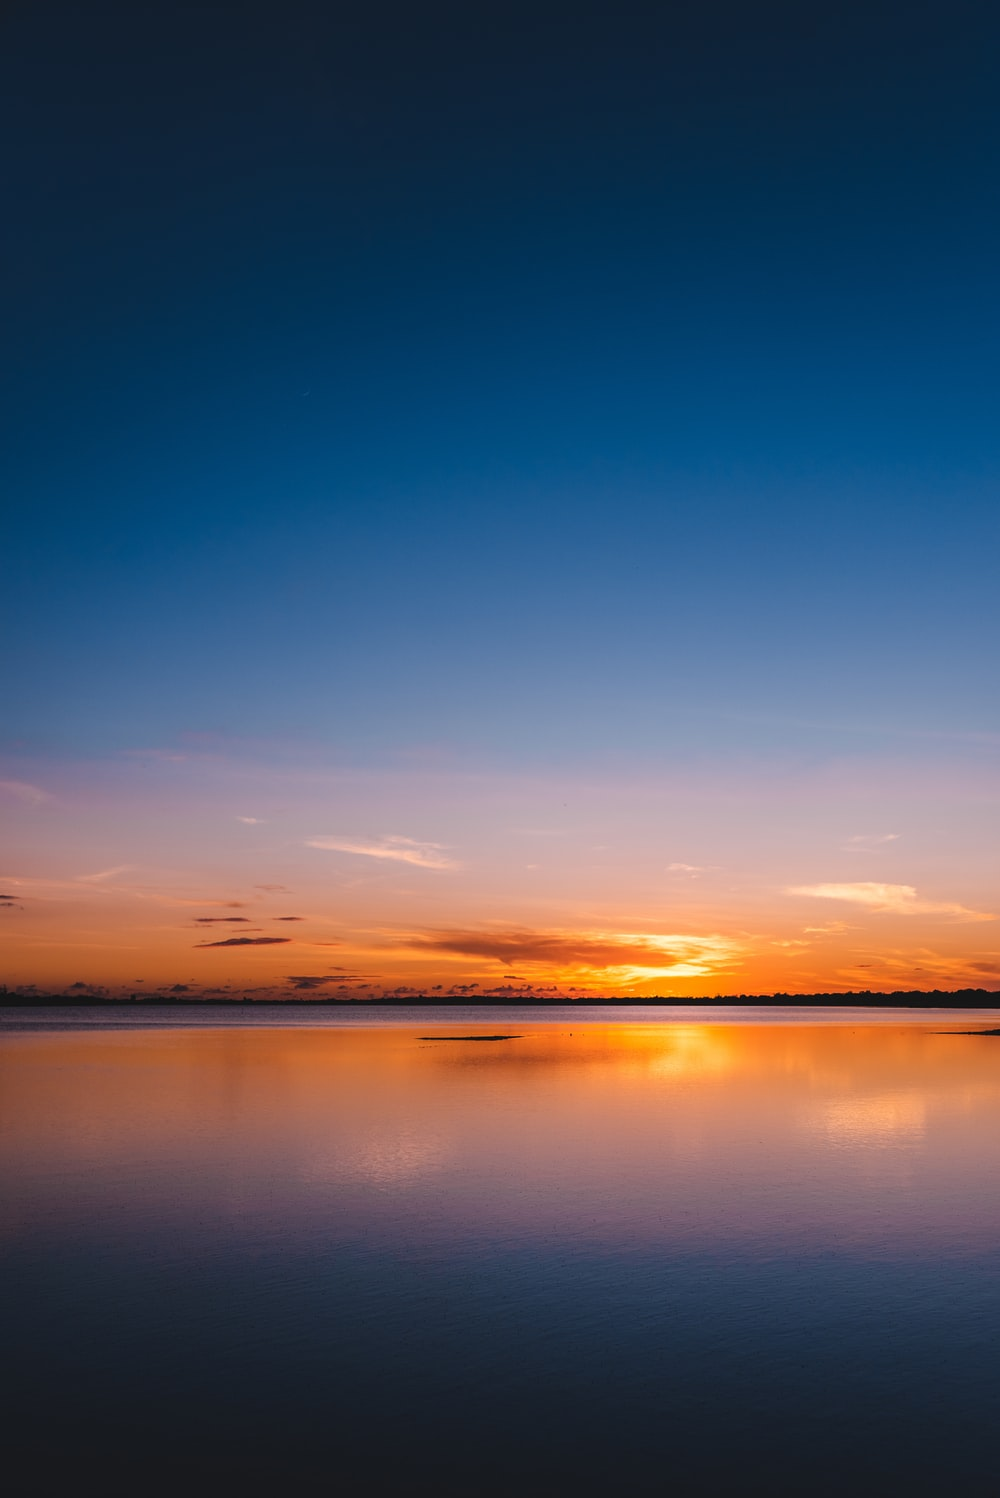 orange and blue sky with calm body of water